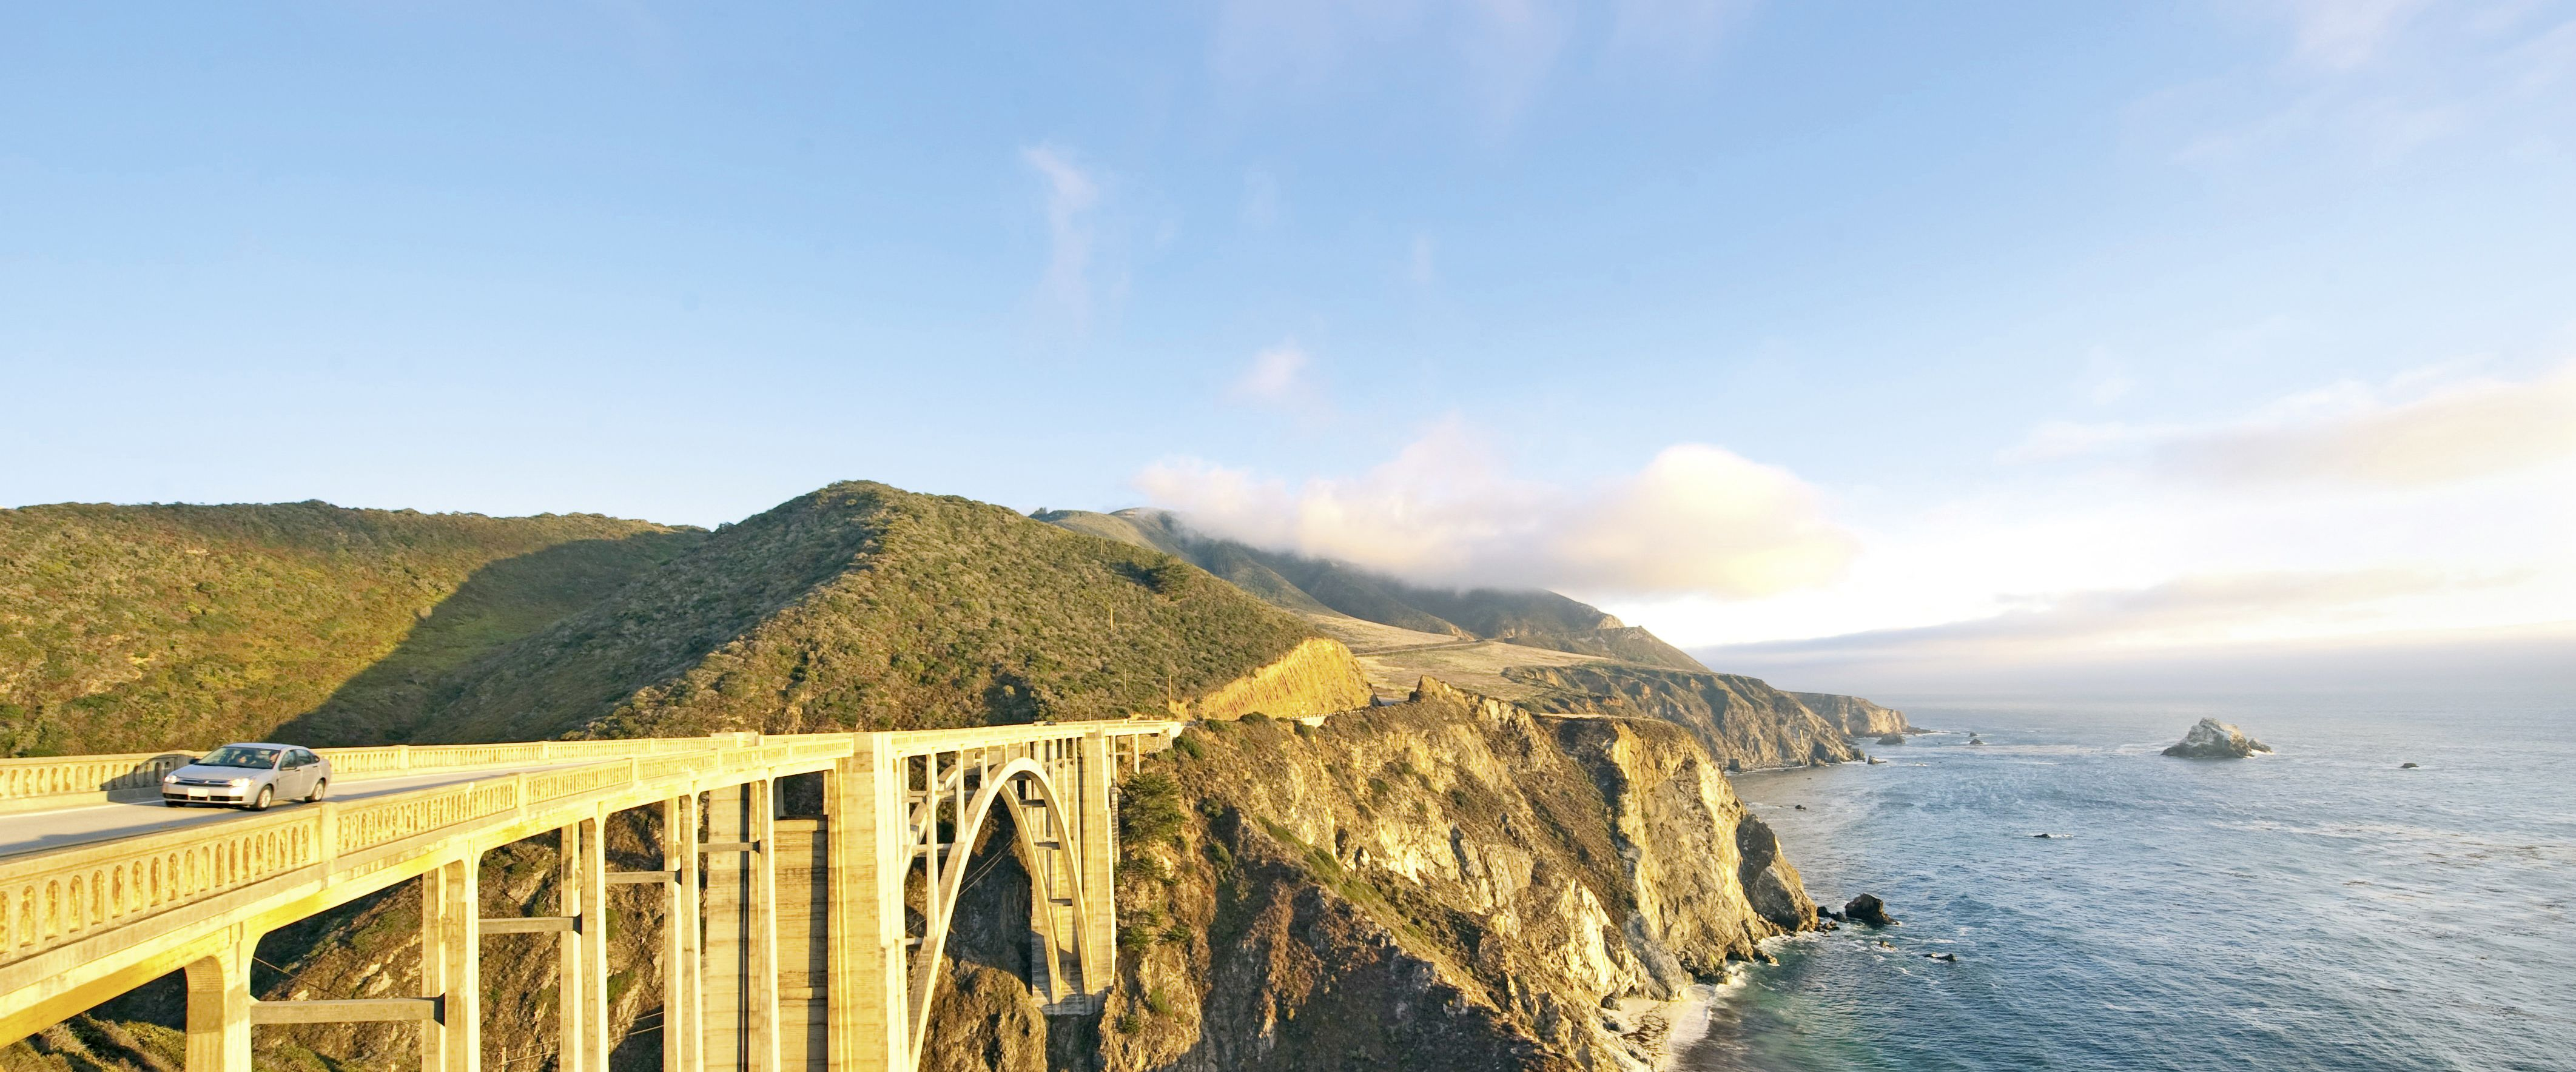 Central Coast, Hwy. No 1, Bixby Bridge